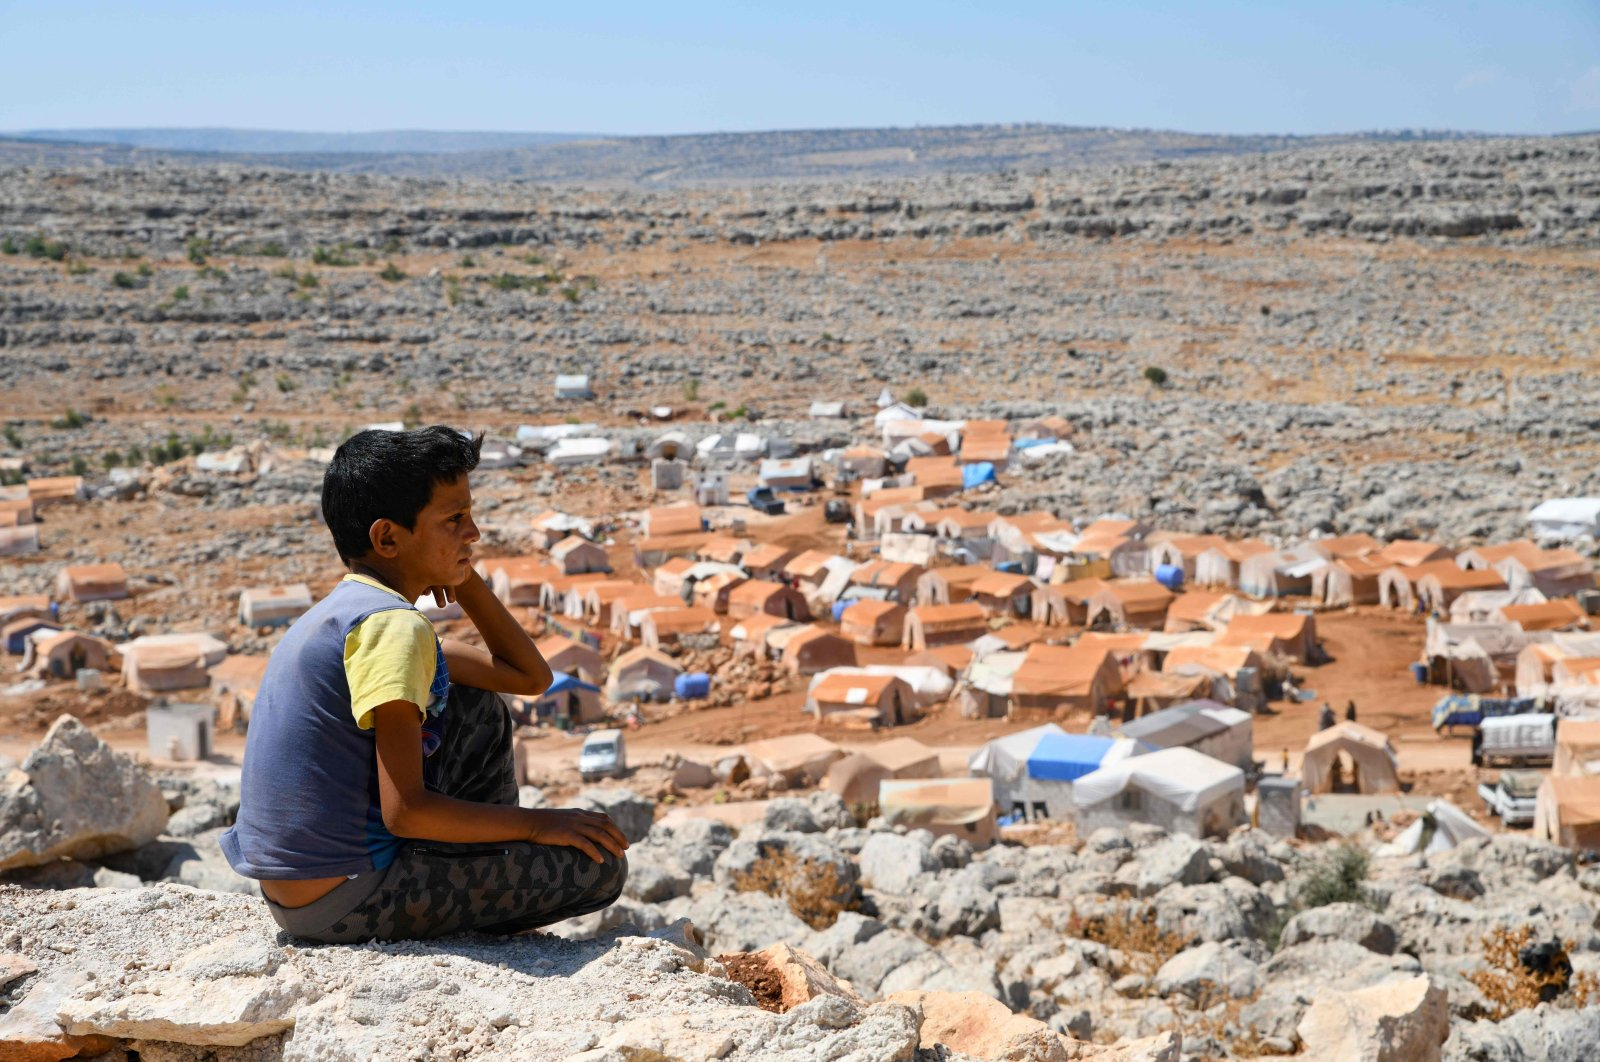 A young Syrian boy who was displaced from the town of Khan Sheikhoun gazes from a small hilltop at the makeshift camp where he currently lives, in the northern countryside of Idlib province near the Turkish border, Sept. 8, 2019. (AFP Photo)